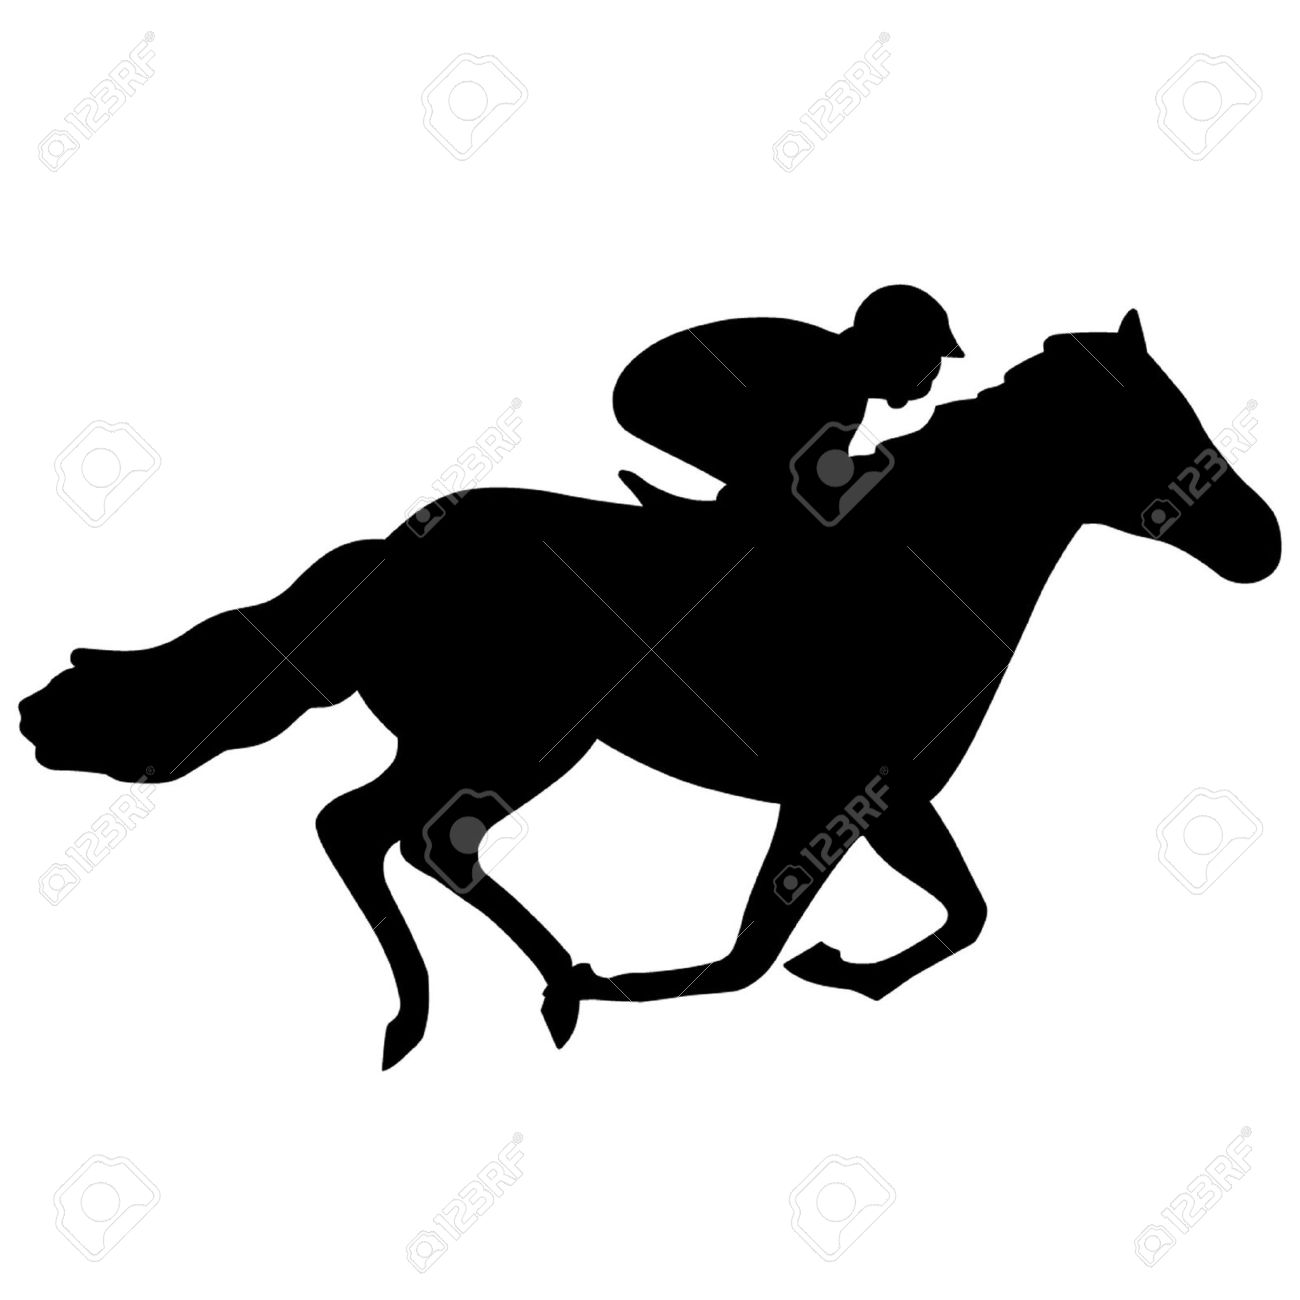 race horse royalty free cliparts vectors and stock illustration rh 123rf com running horse silhouette clip art free